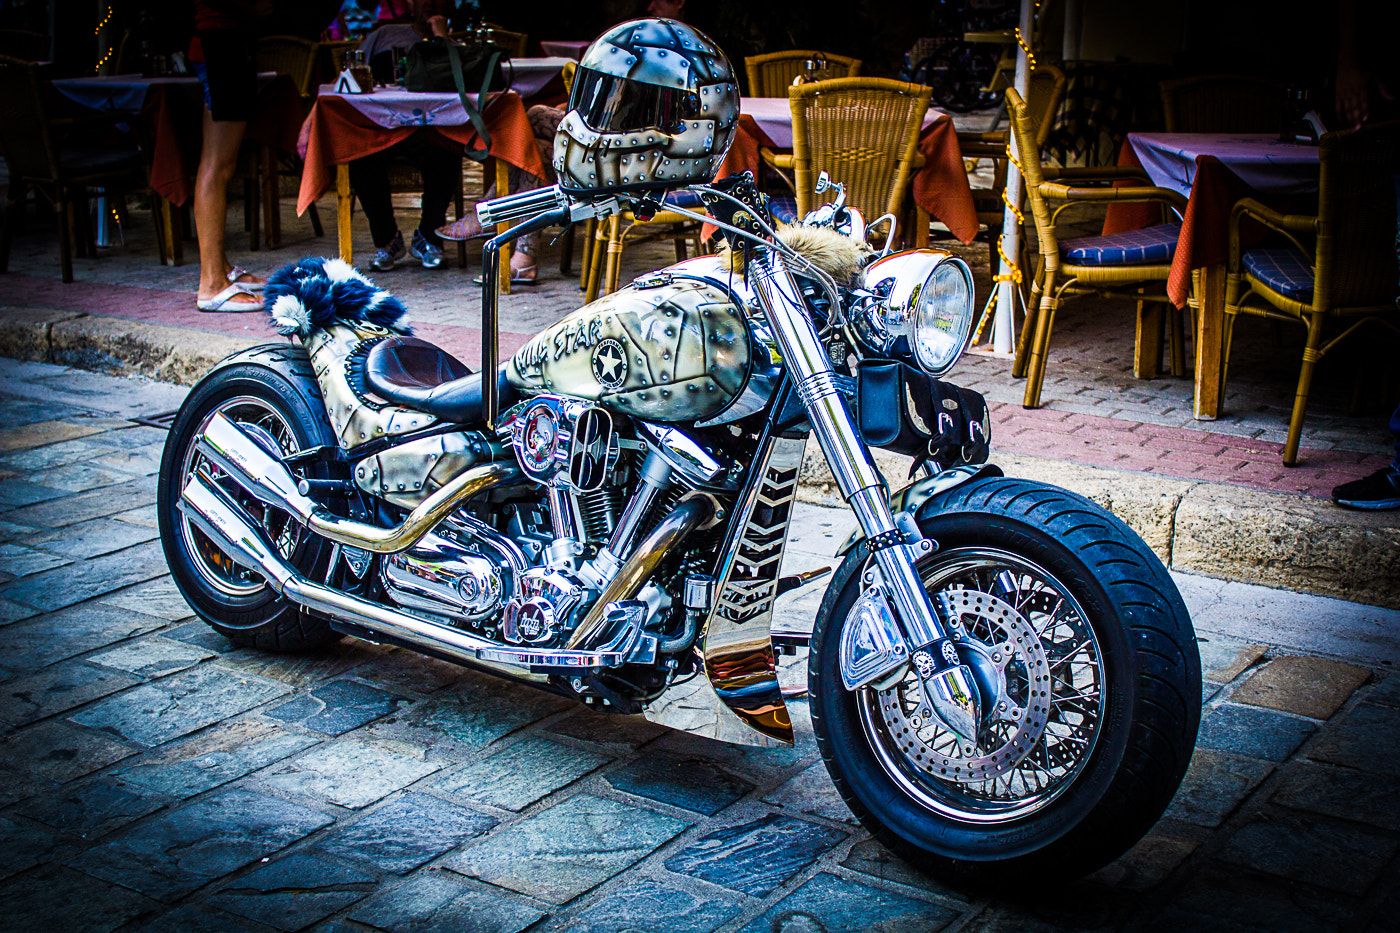 Photograph Cool Bike! by Jeff Price-Jones on 500px